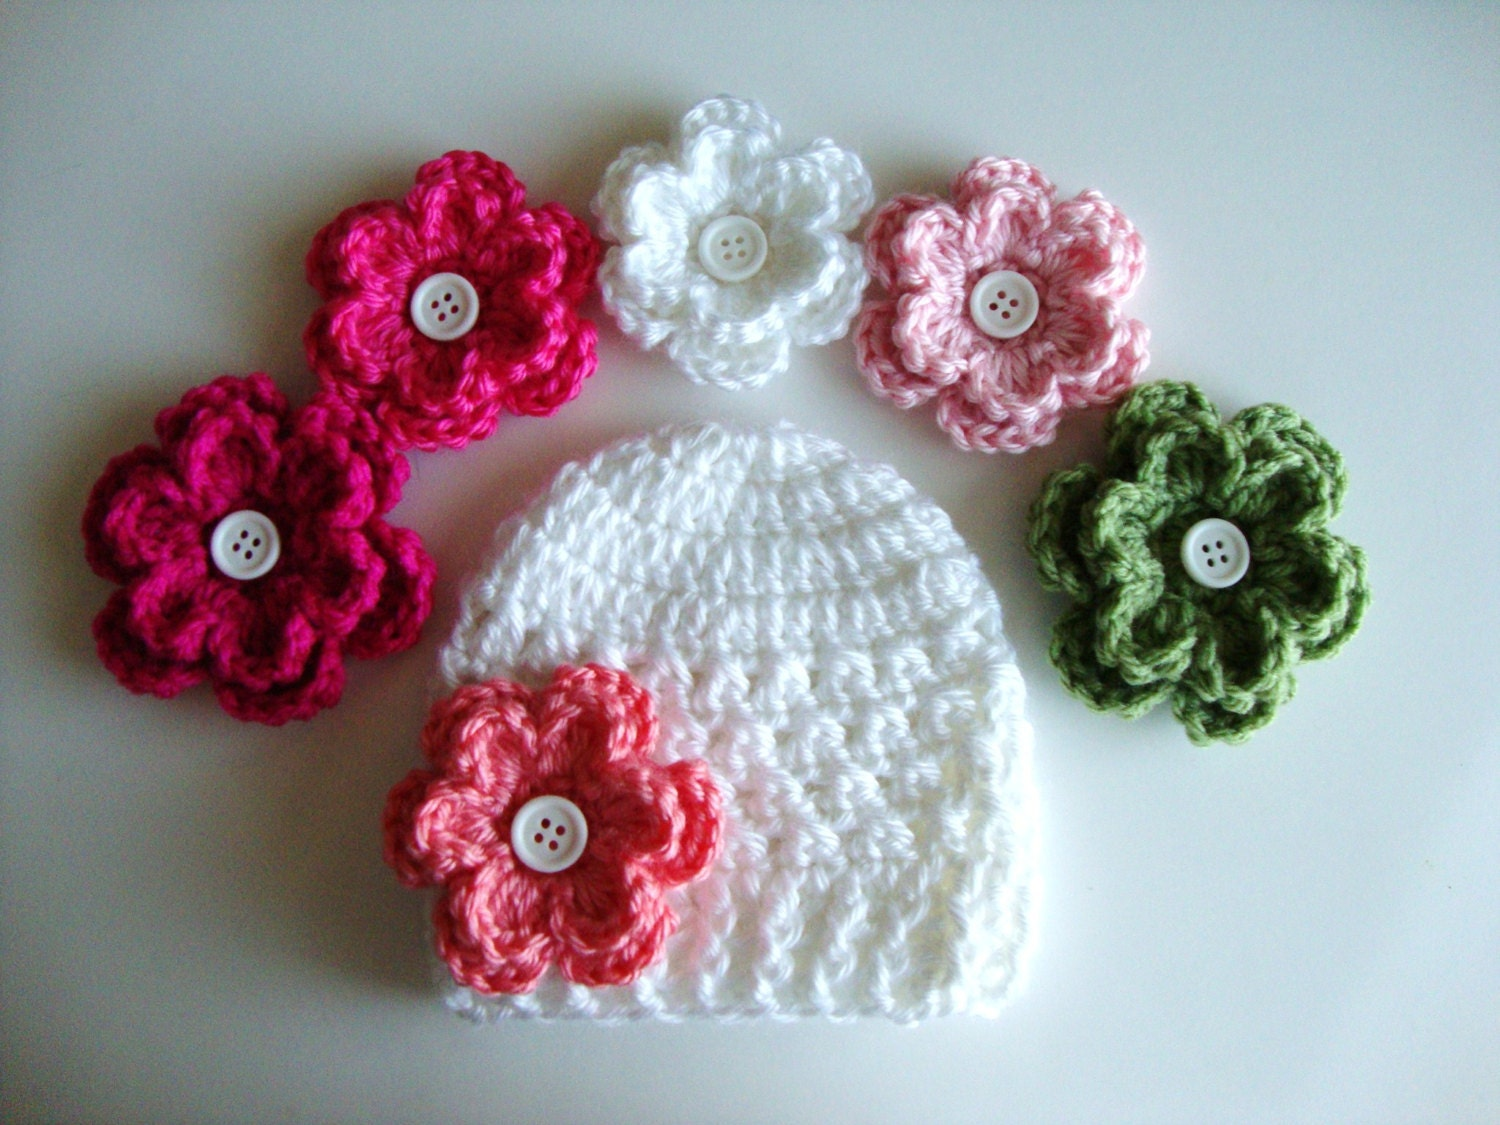 Crochet Hat Patterns Flowers : Baby Girl Crochet Flower Hat Pattern Preemie up to 12 months